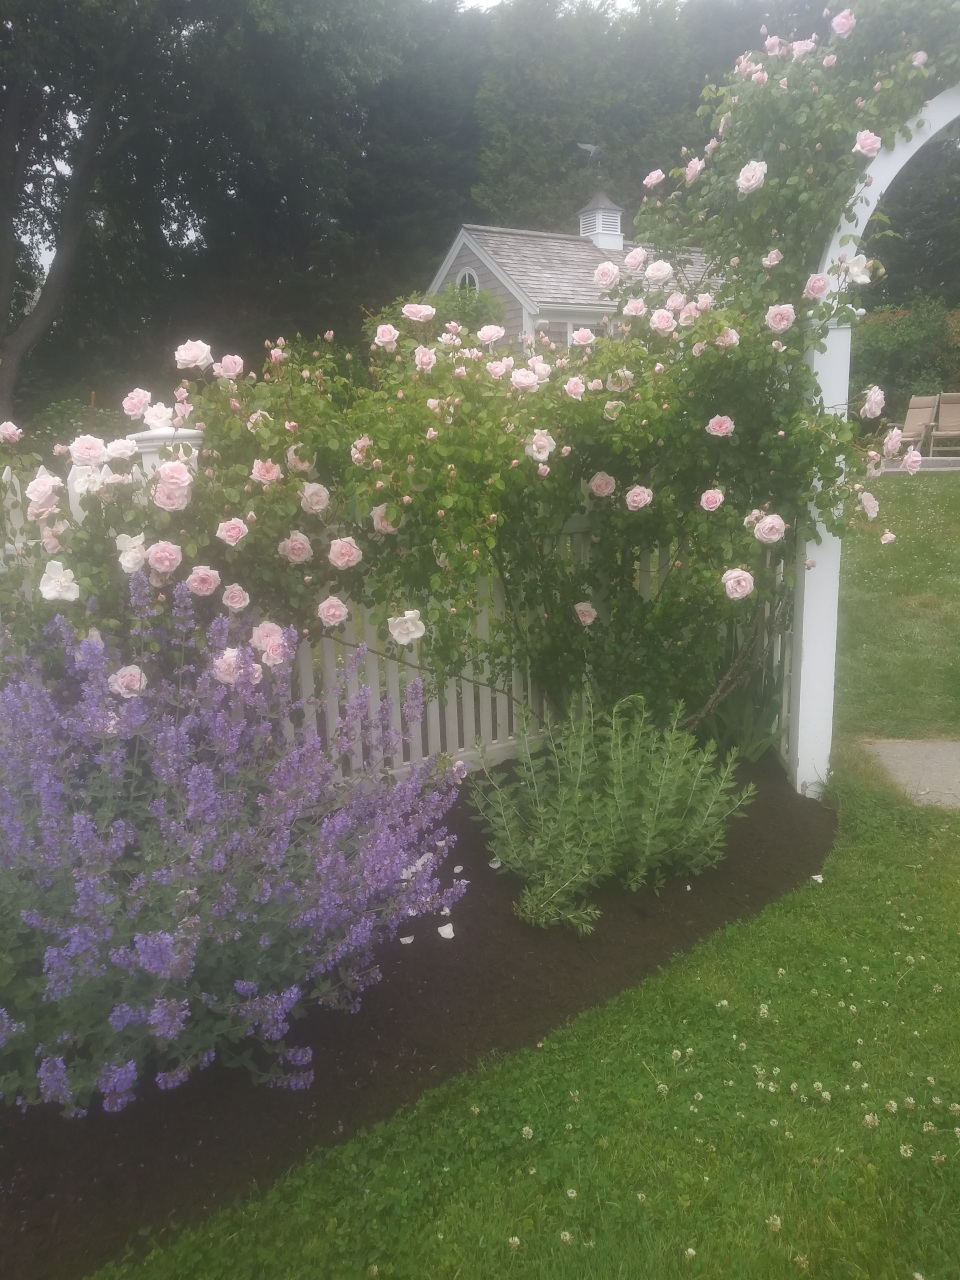 Roses and flowers growing through a white fence